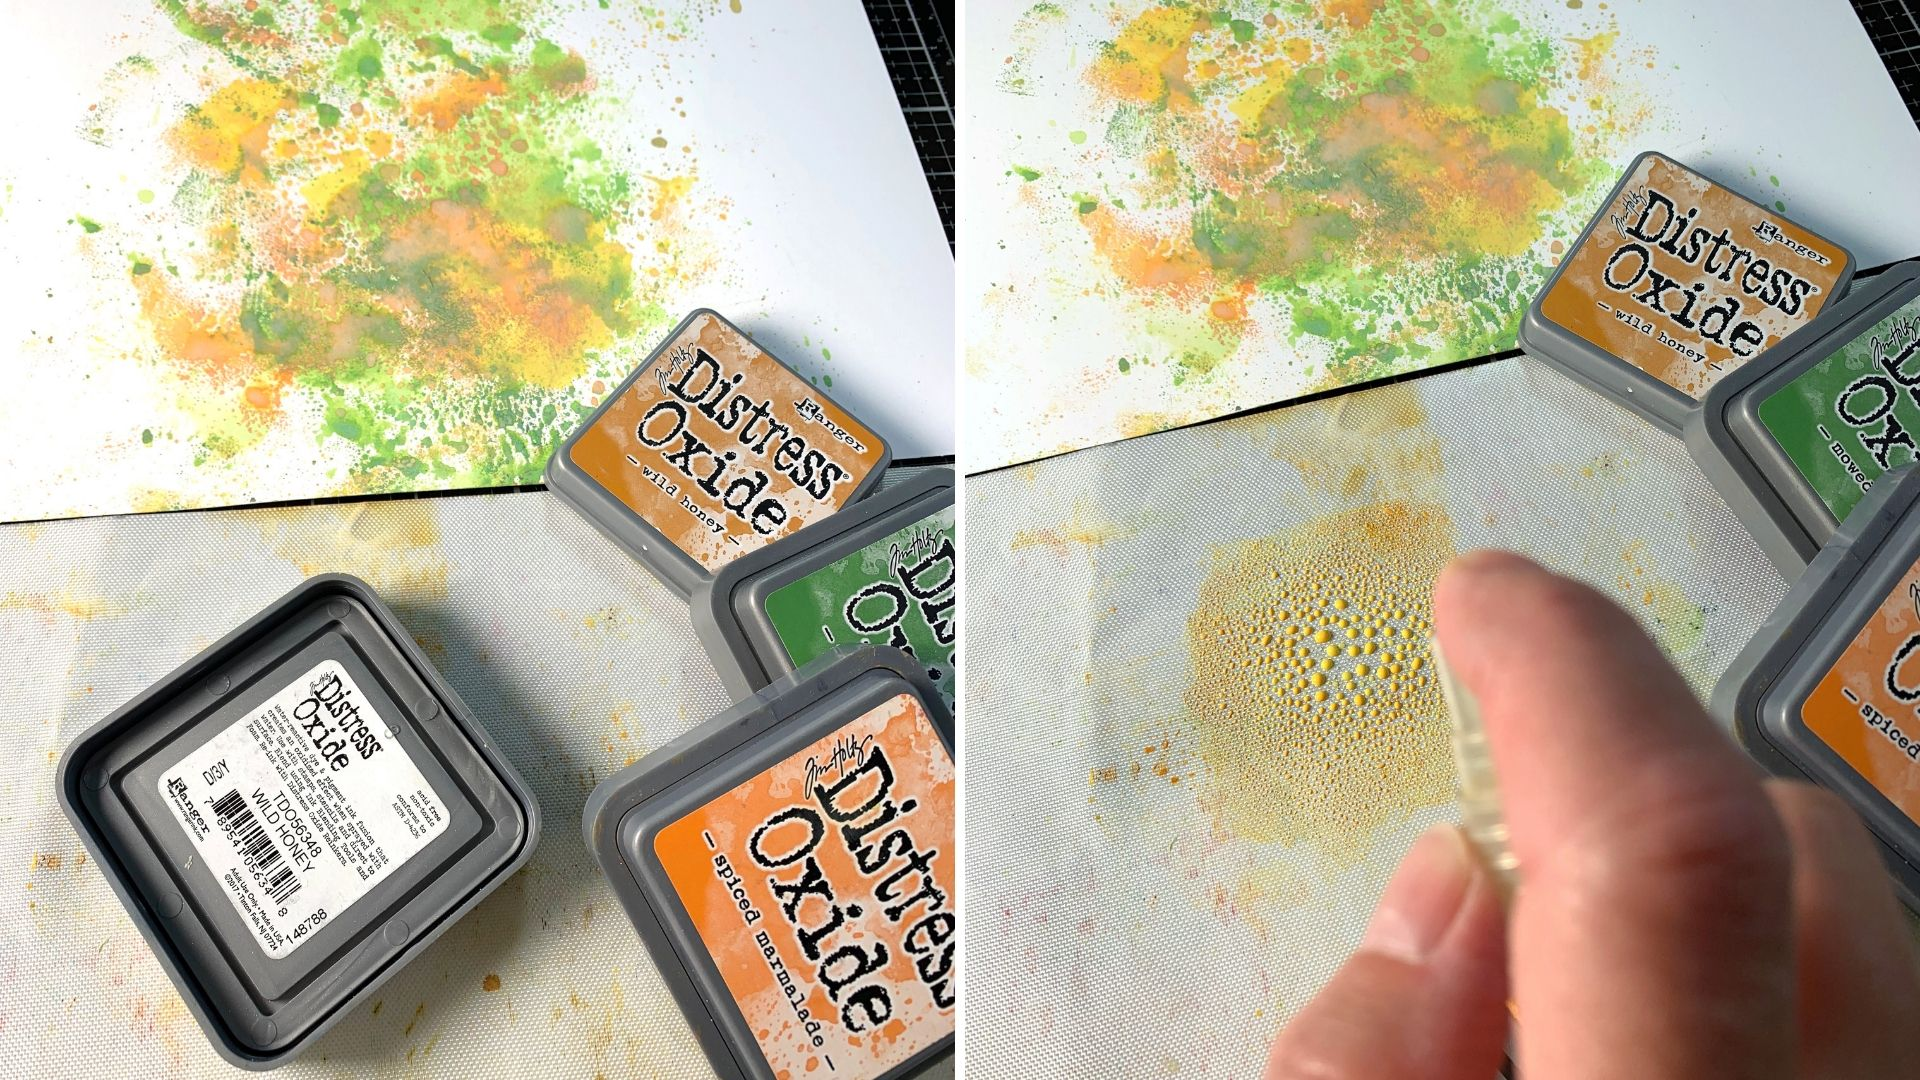 Scrapbooking a background using a water spritz technique featuring Ranger Tim Holtz Distress Oxide inks in greens, yellows and orange colors.